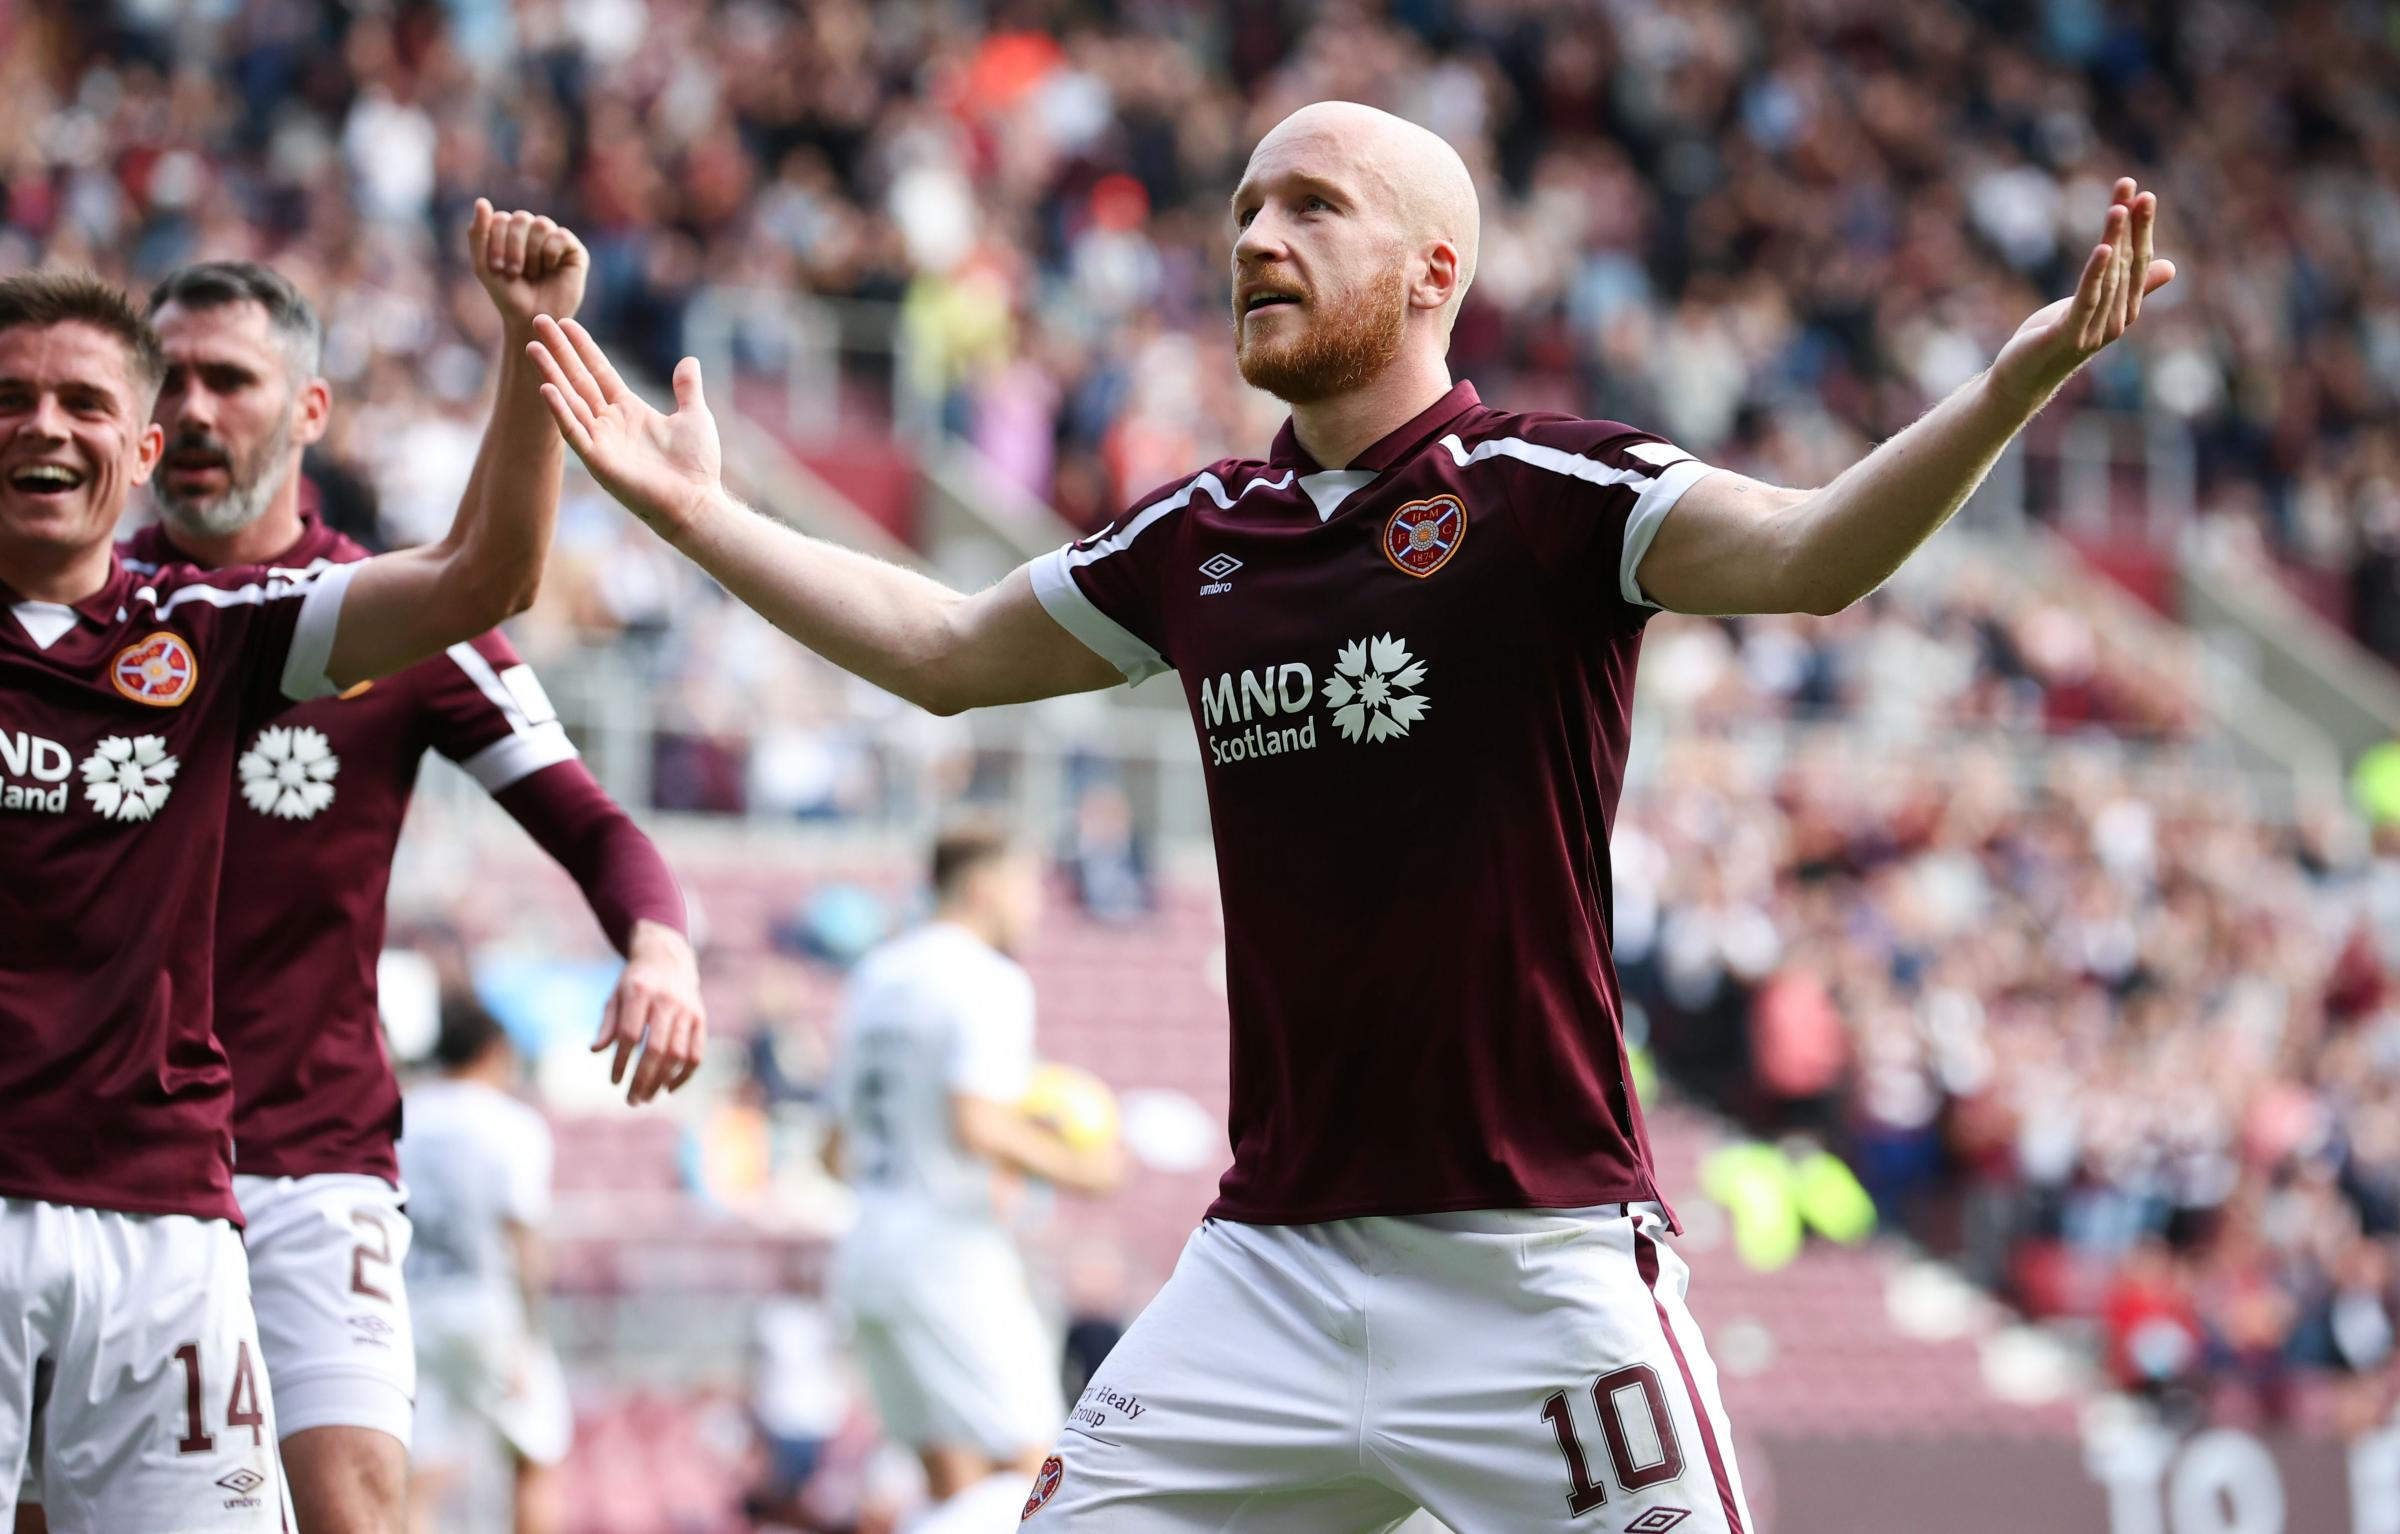 Hearts 3-0 Livingston: Hosts put lethargic Lions to the sword